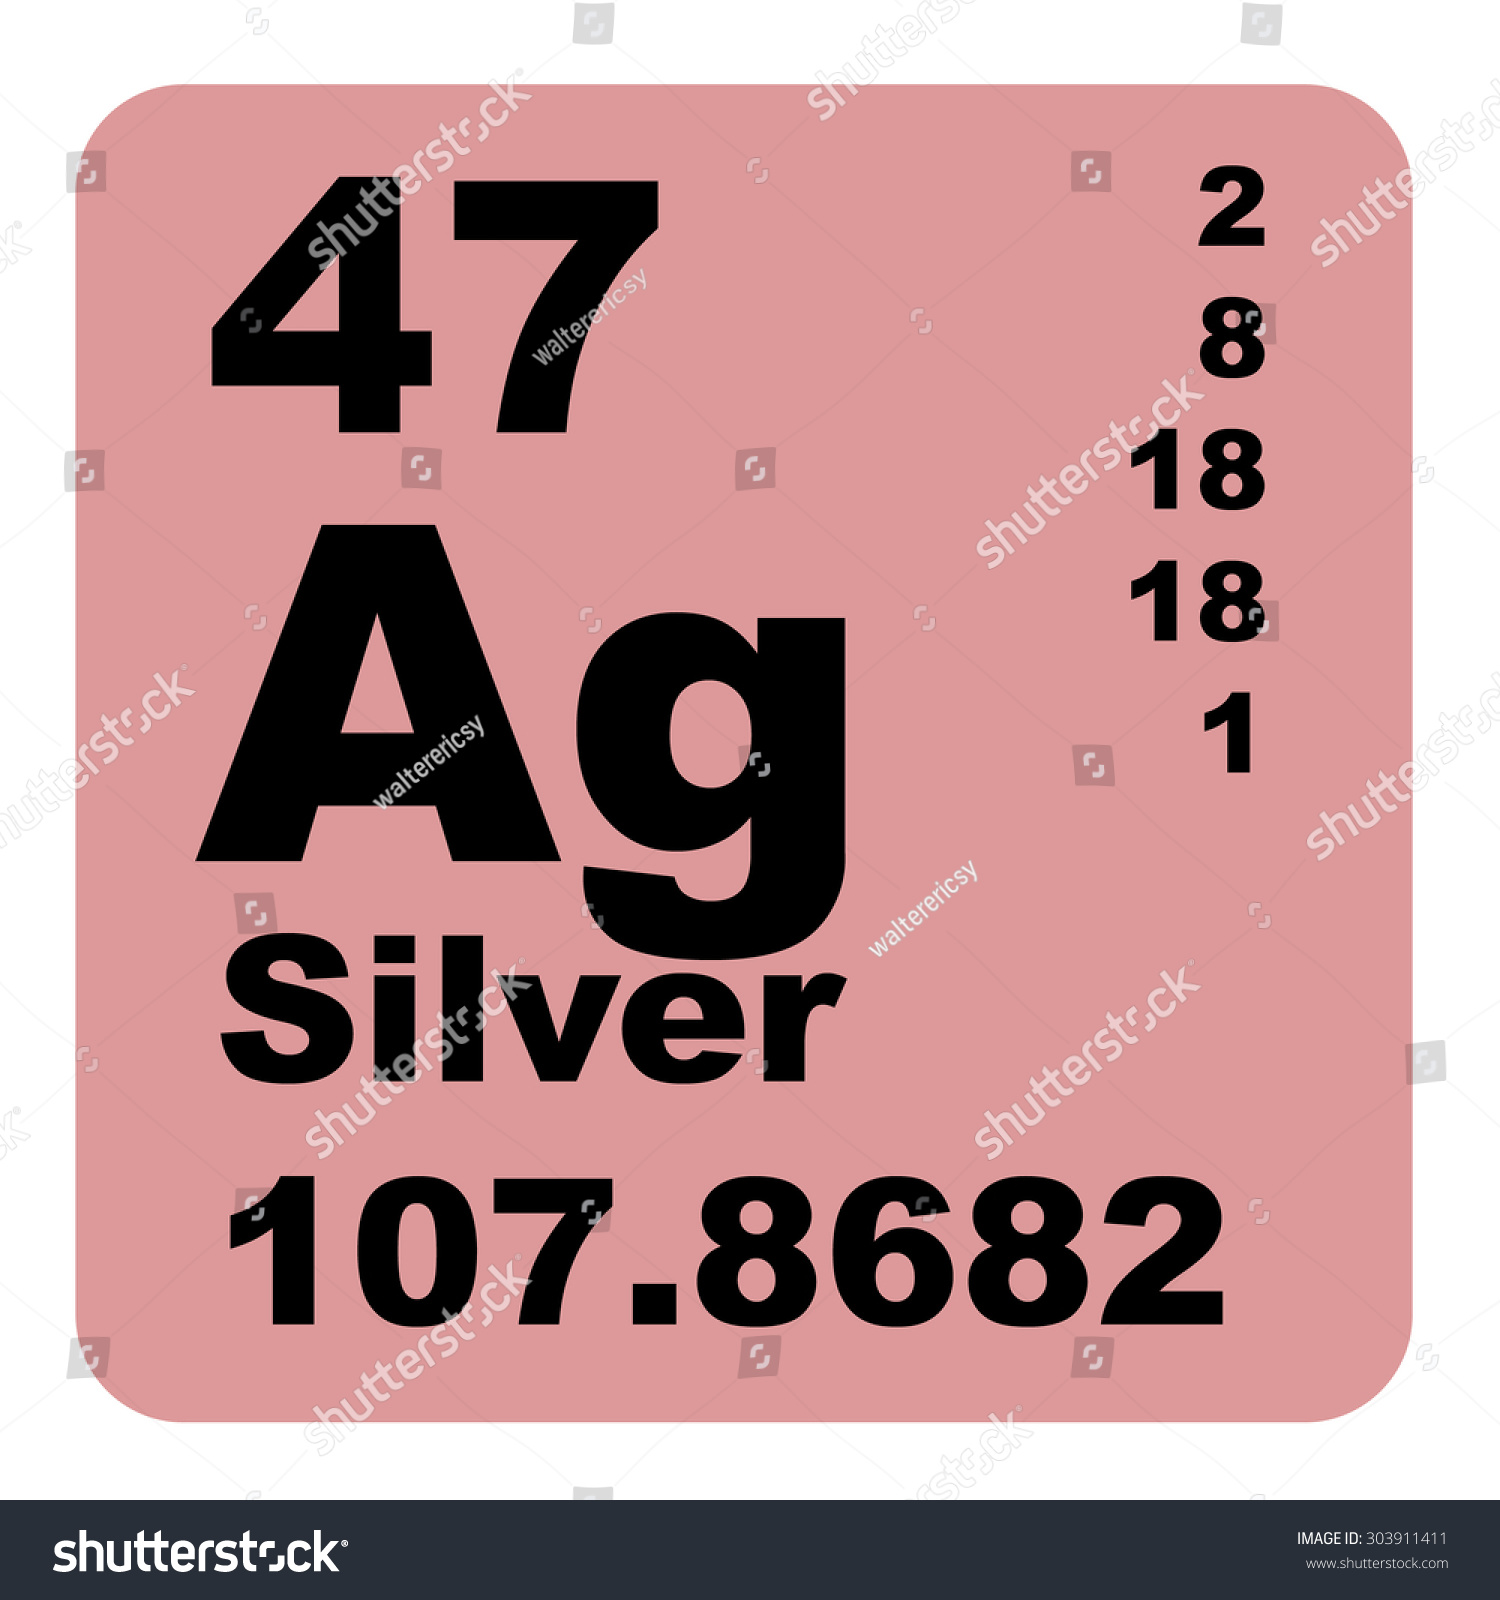 Periodic table of elements silver images periodic table images where is silver on the periodic table choice image periodic silver periodic table elements stock illustration gamestrikefo Image collections